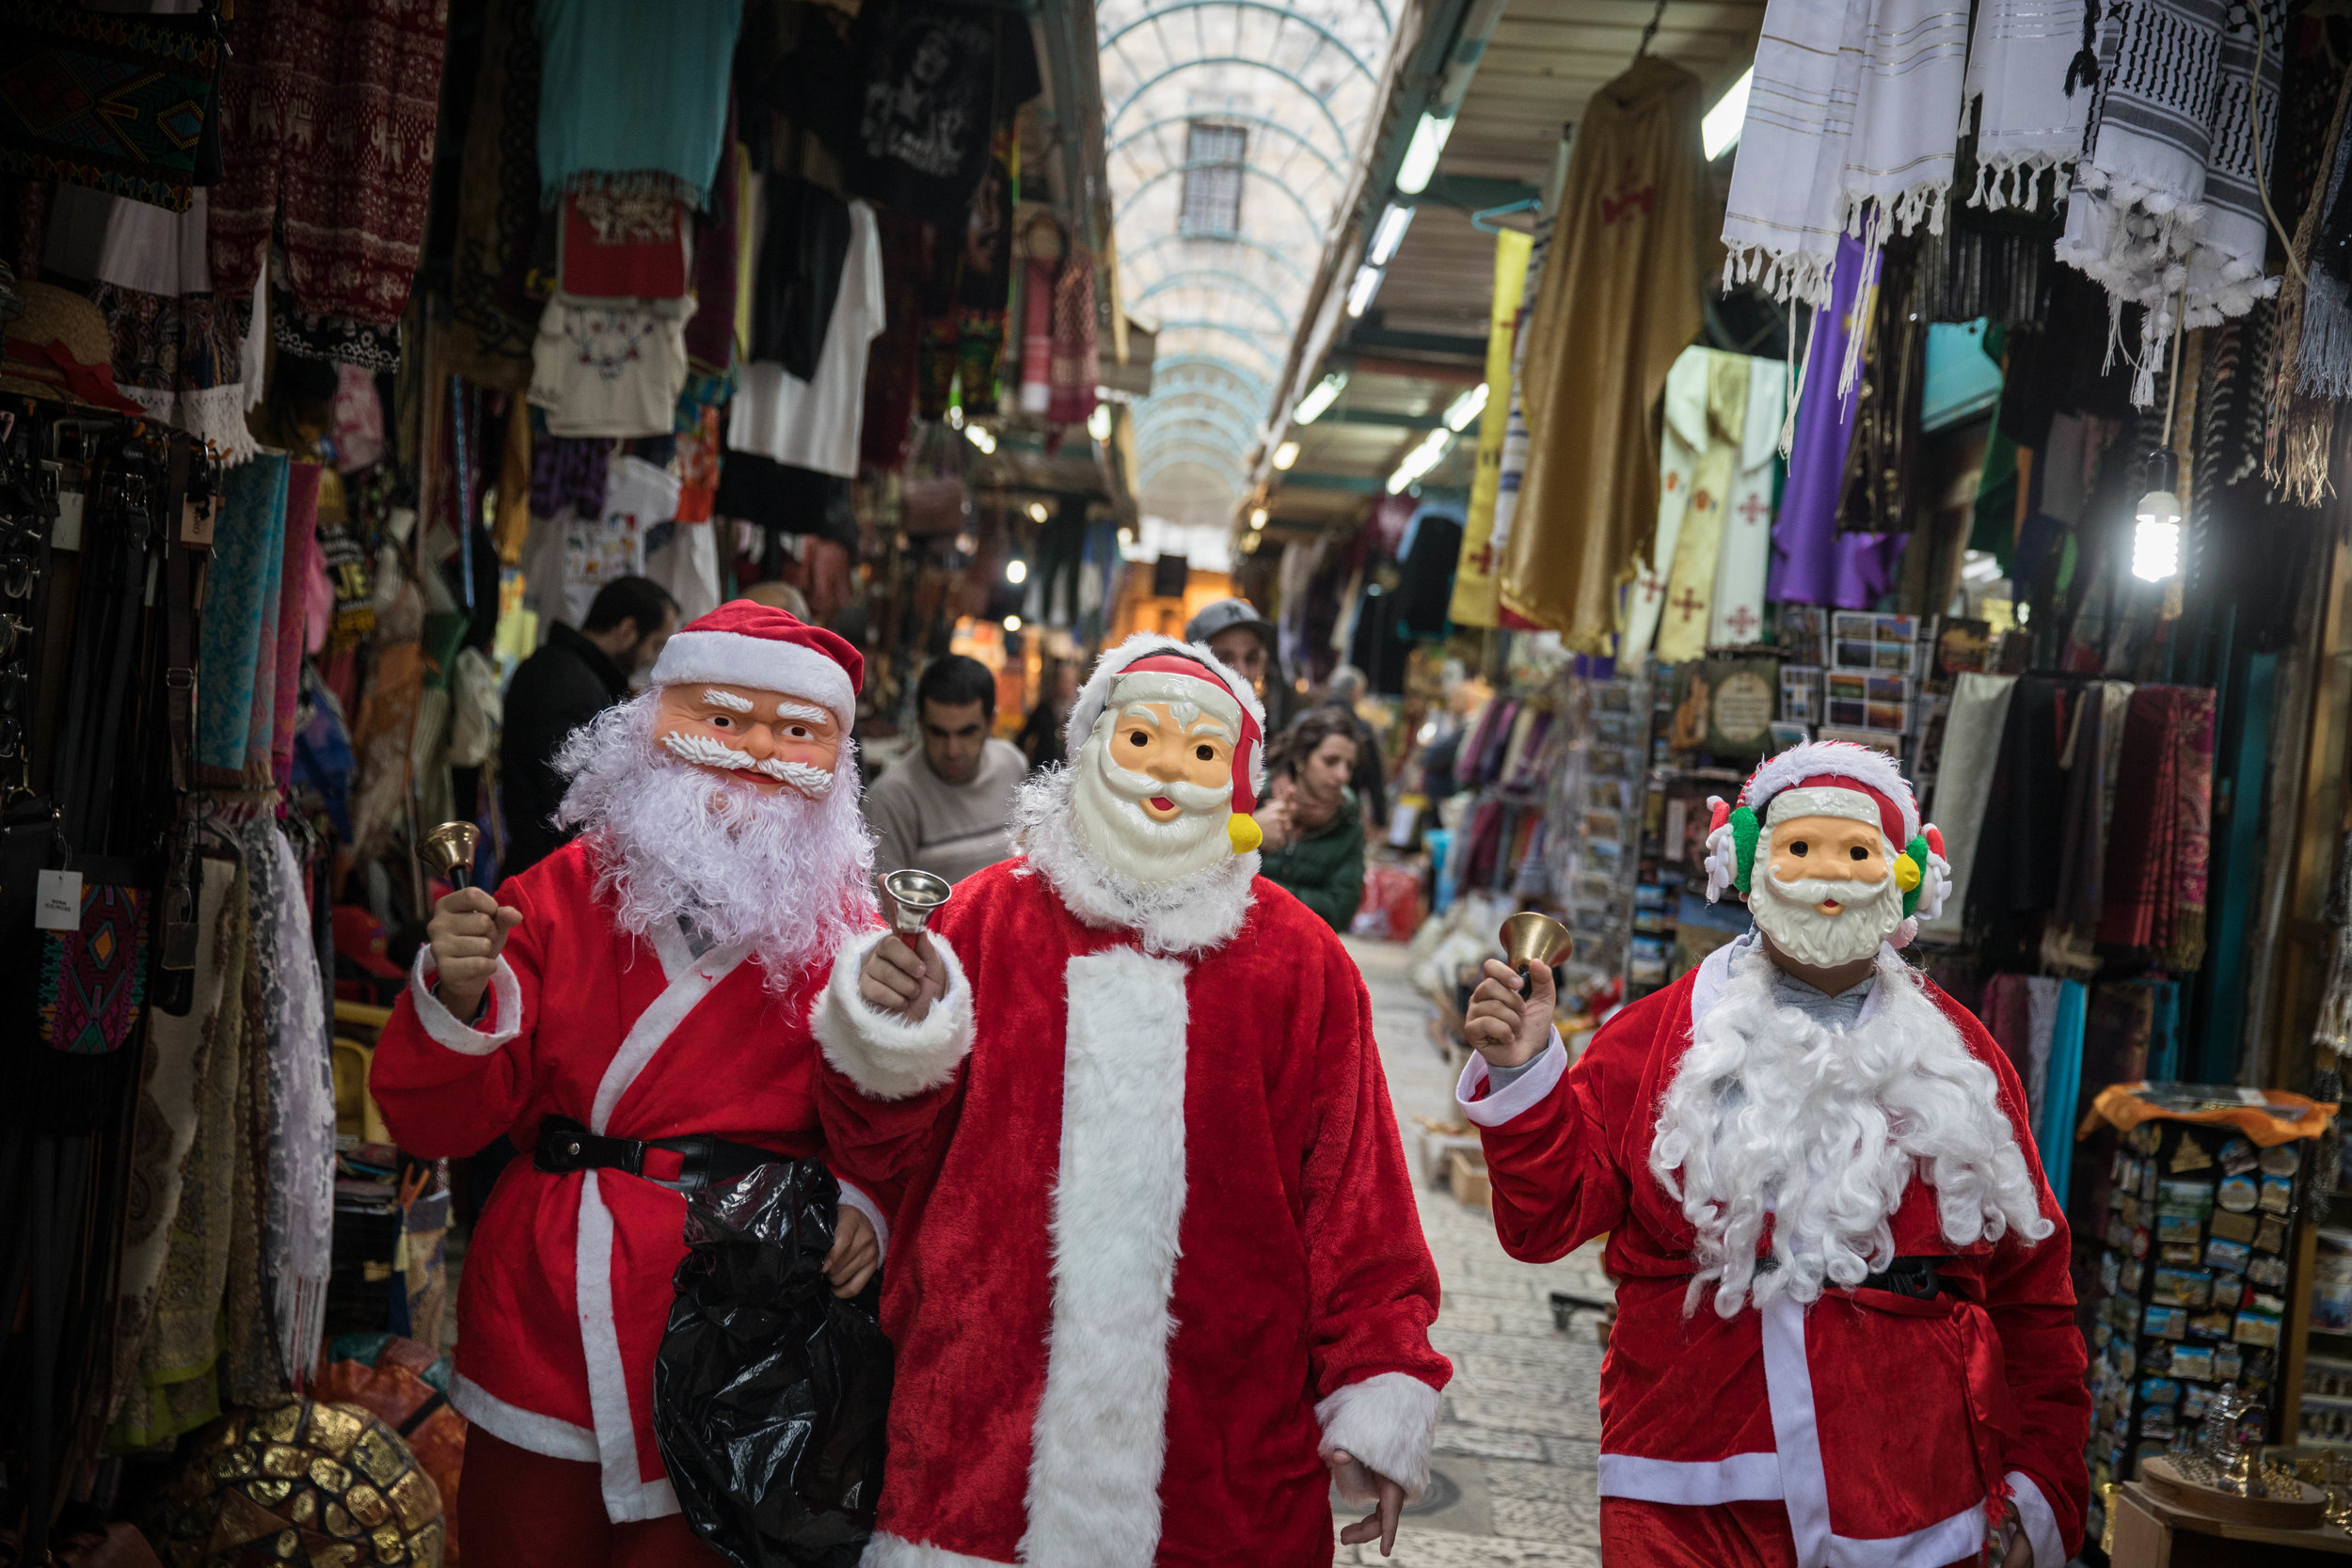 People dressed up as Santa Claus walk through the market in Jerusalem's Old City on Christmas eve, Dec. 24, 2017. Credit: Hadas Parush/Flash90.